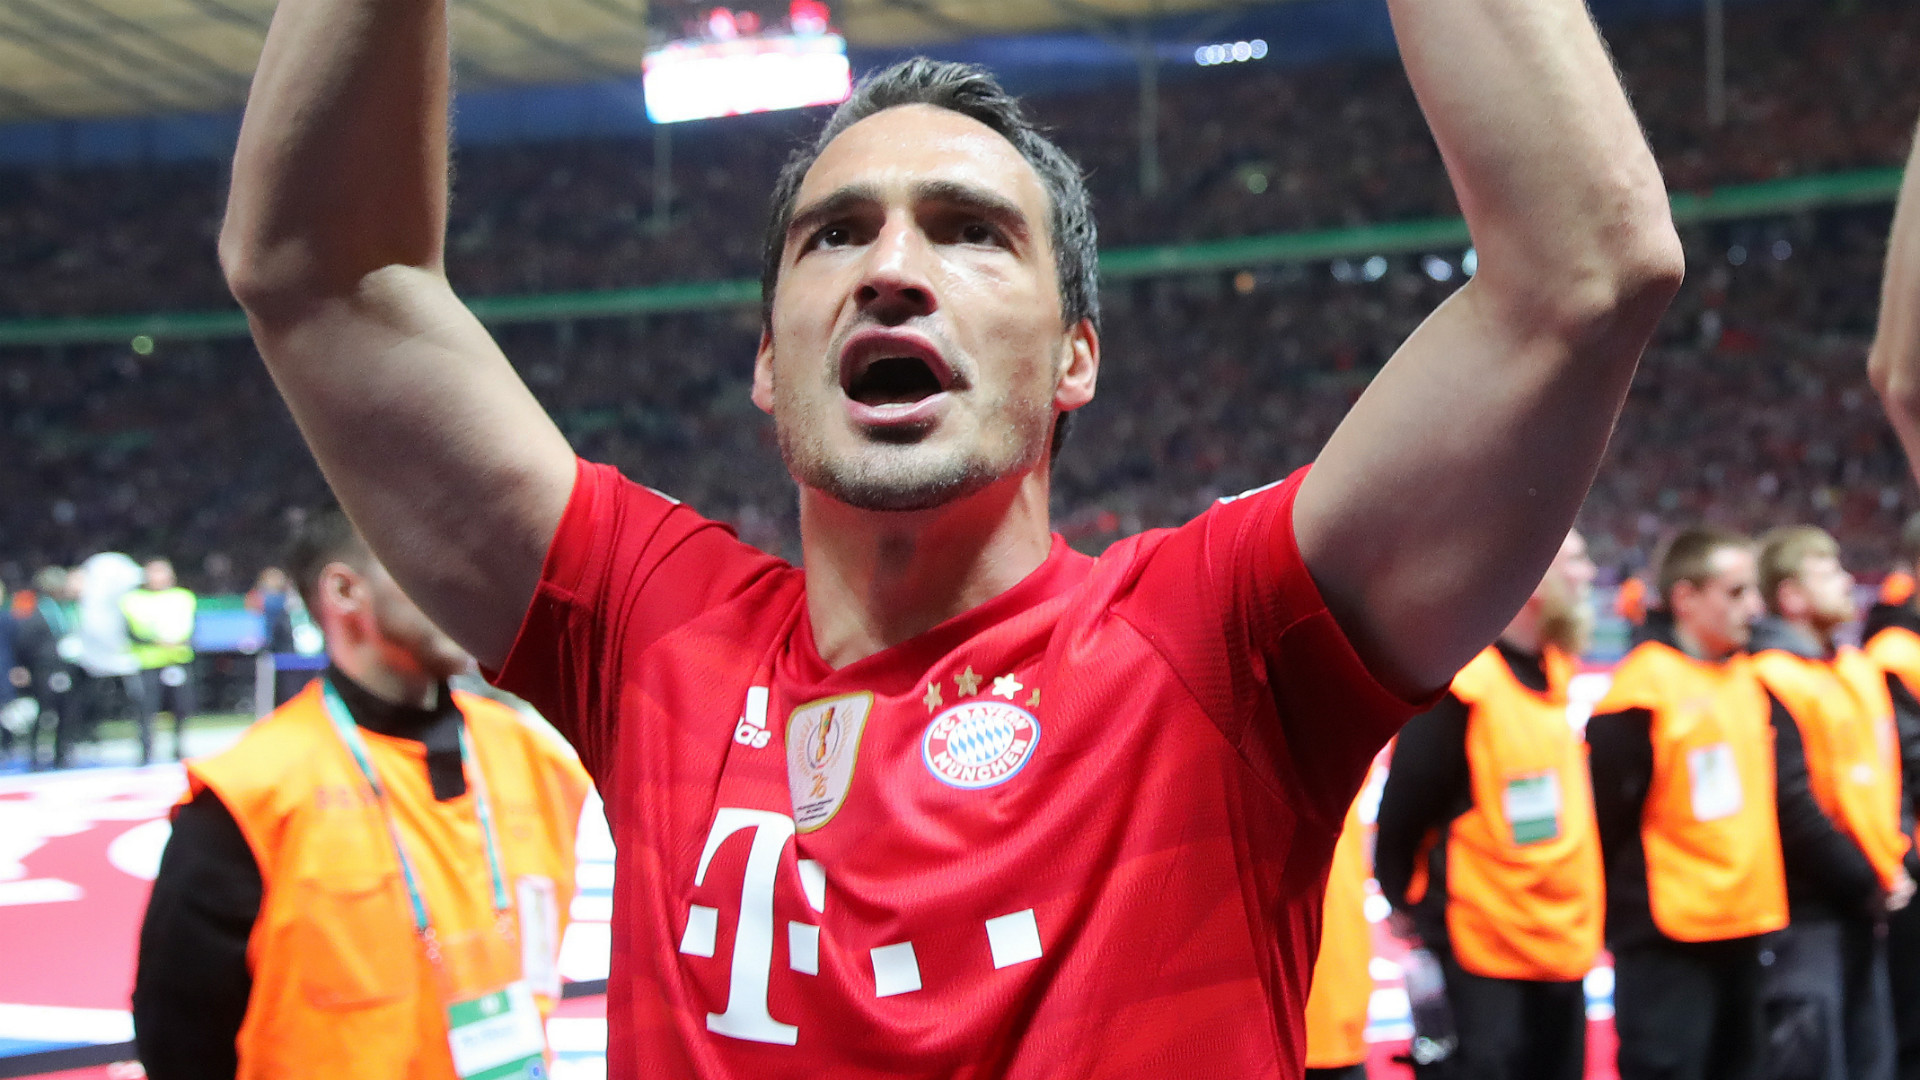 Mats Hummels leaves Bayern Munich for Borussia Dortmund again